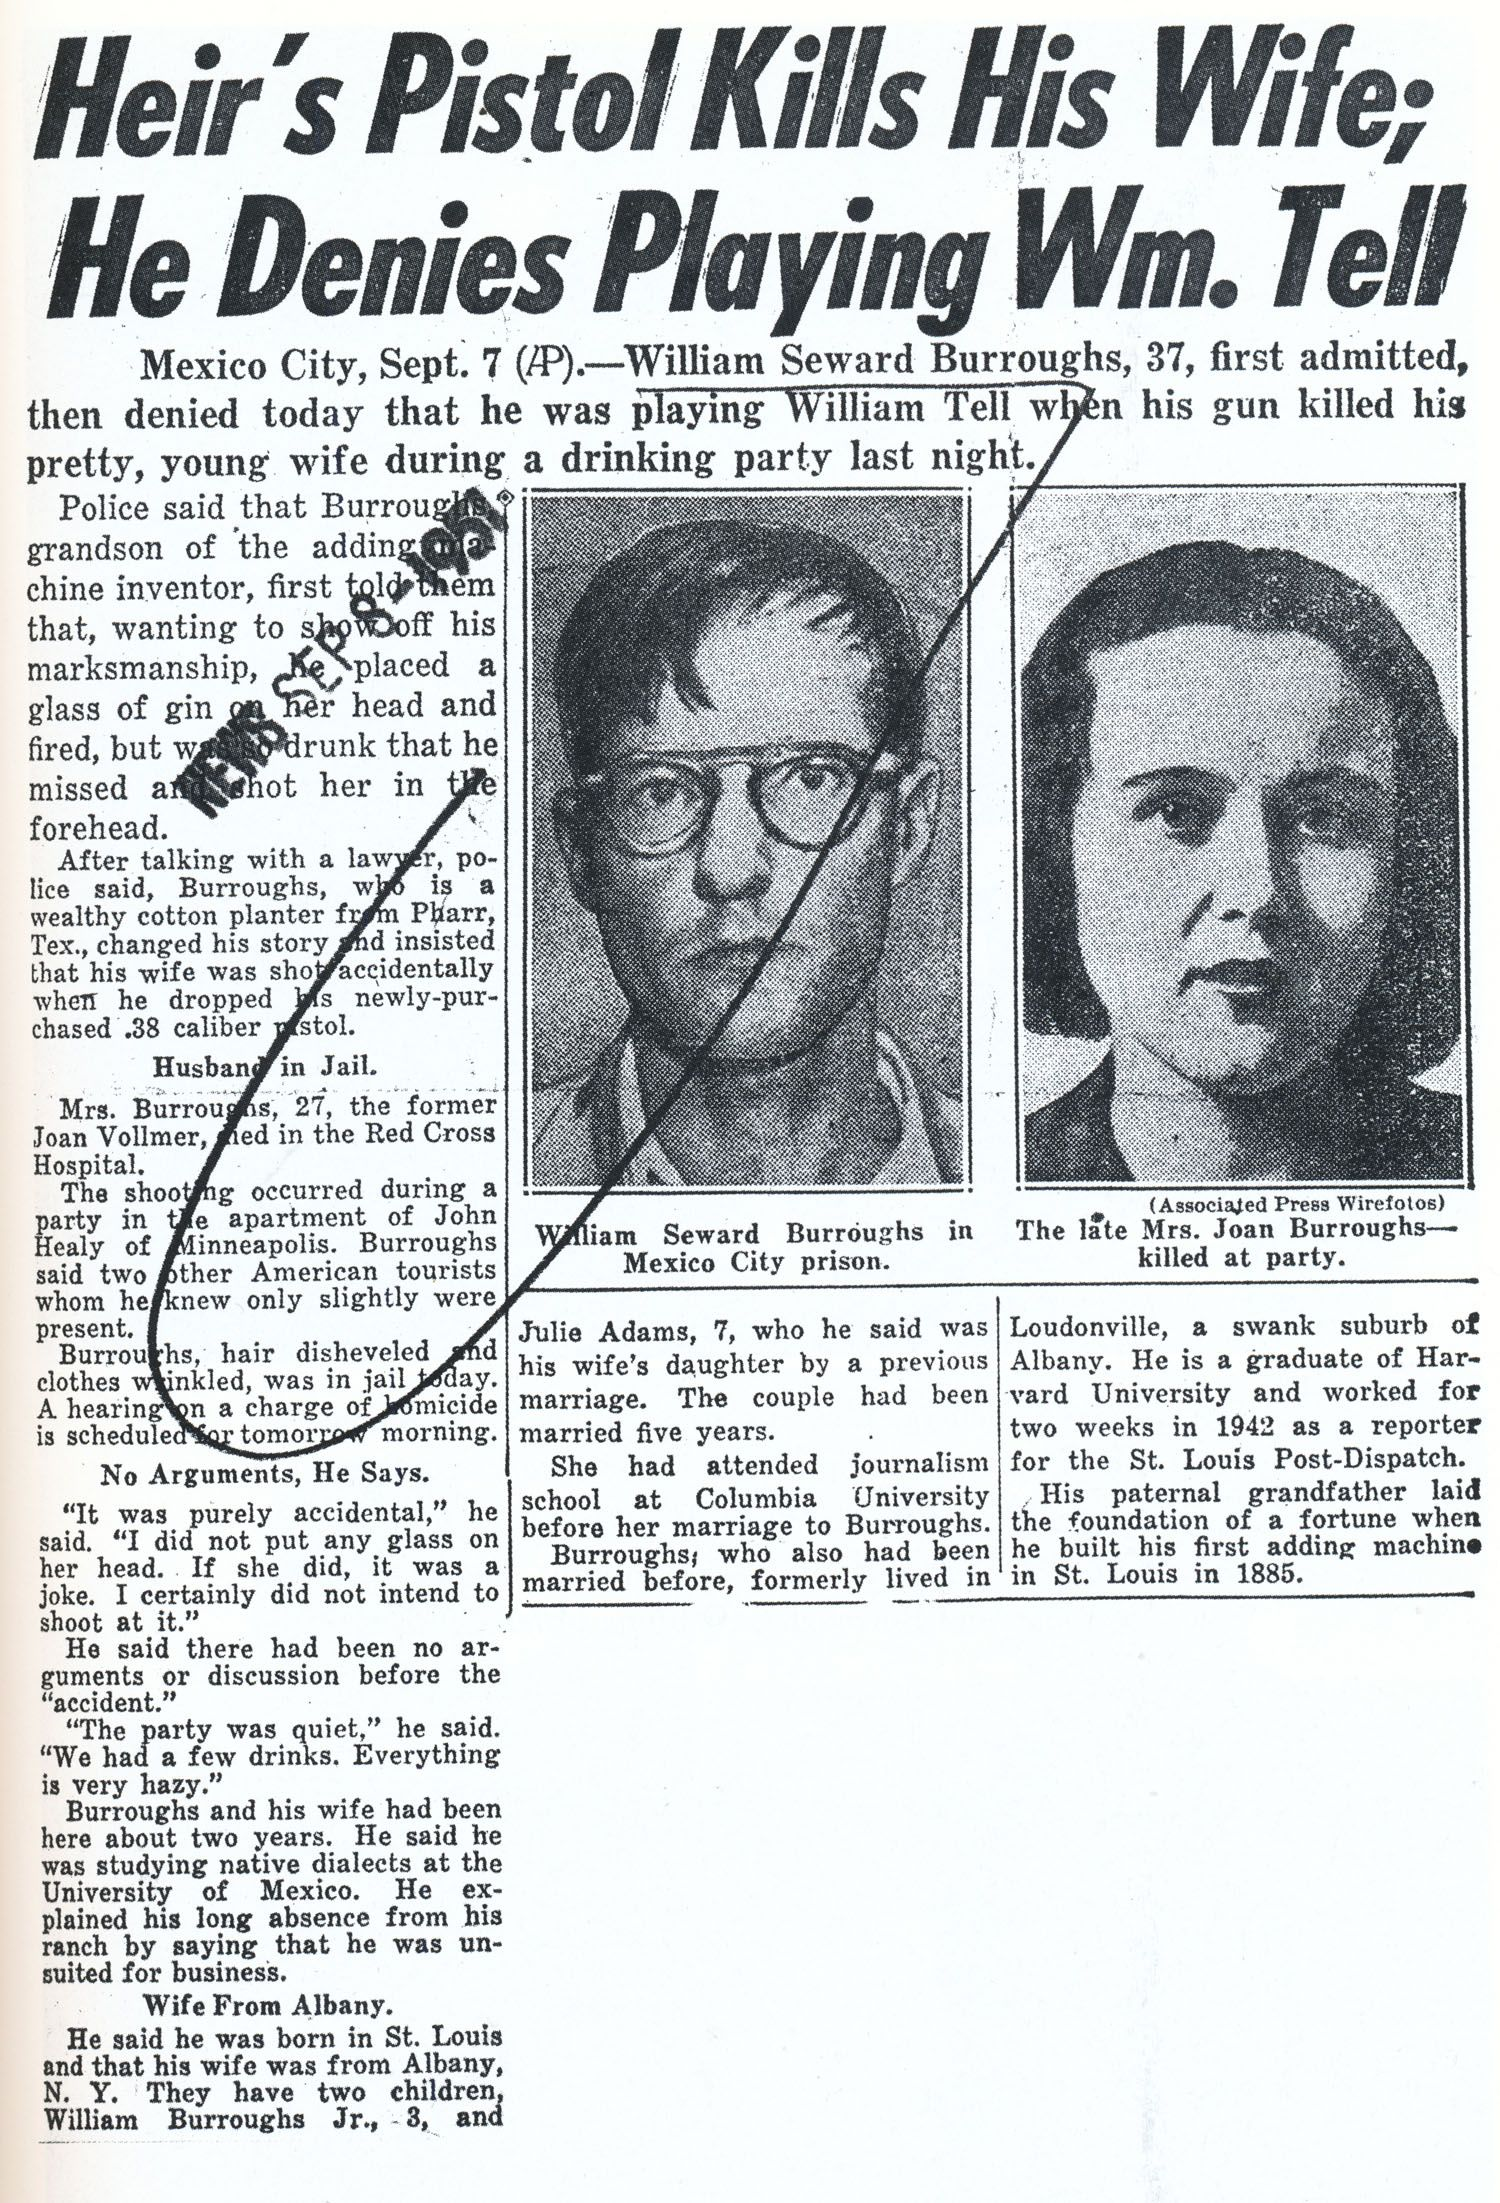 William & Joan Burroughs (Old Bull Lee and Jane Lee). Check out Brigette's review of Jack Kerouac's On The Road here: http://chaptersandscenes.wordpress.com/2014/03/17/brigette-reviews-on-the-road/